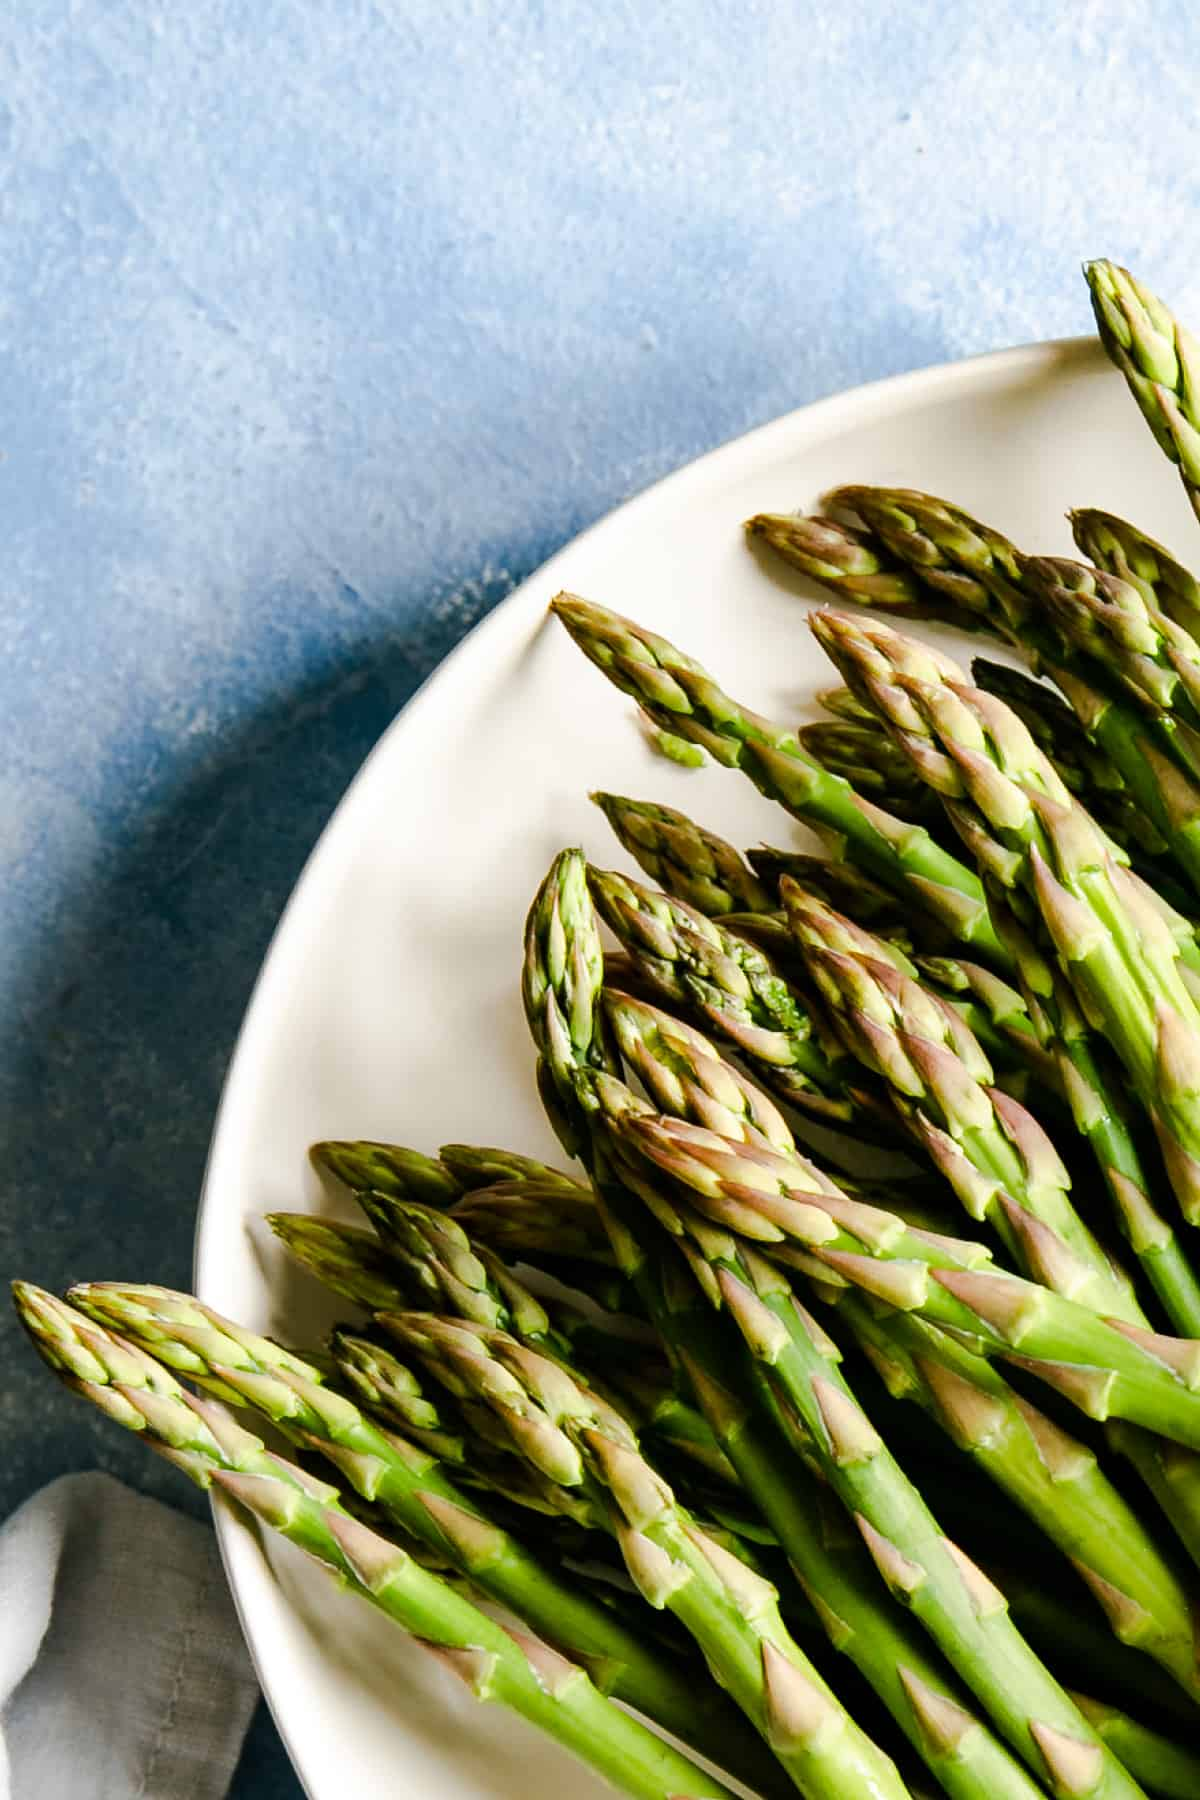 close up of green asparagus tips in a white plate on a blue backdrop